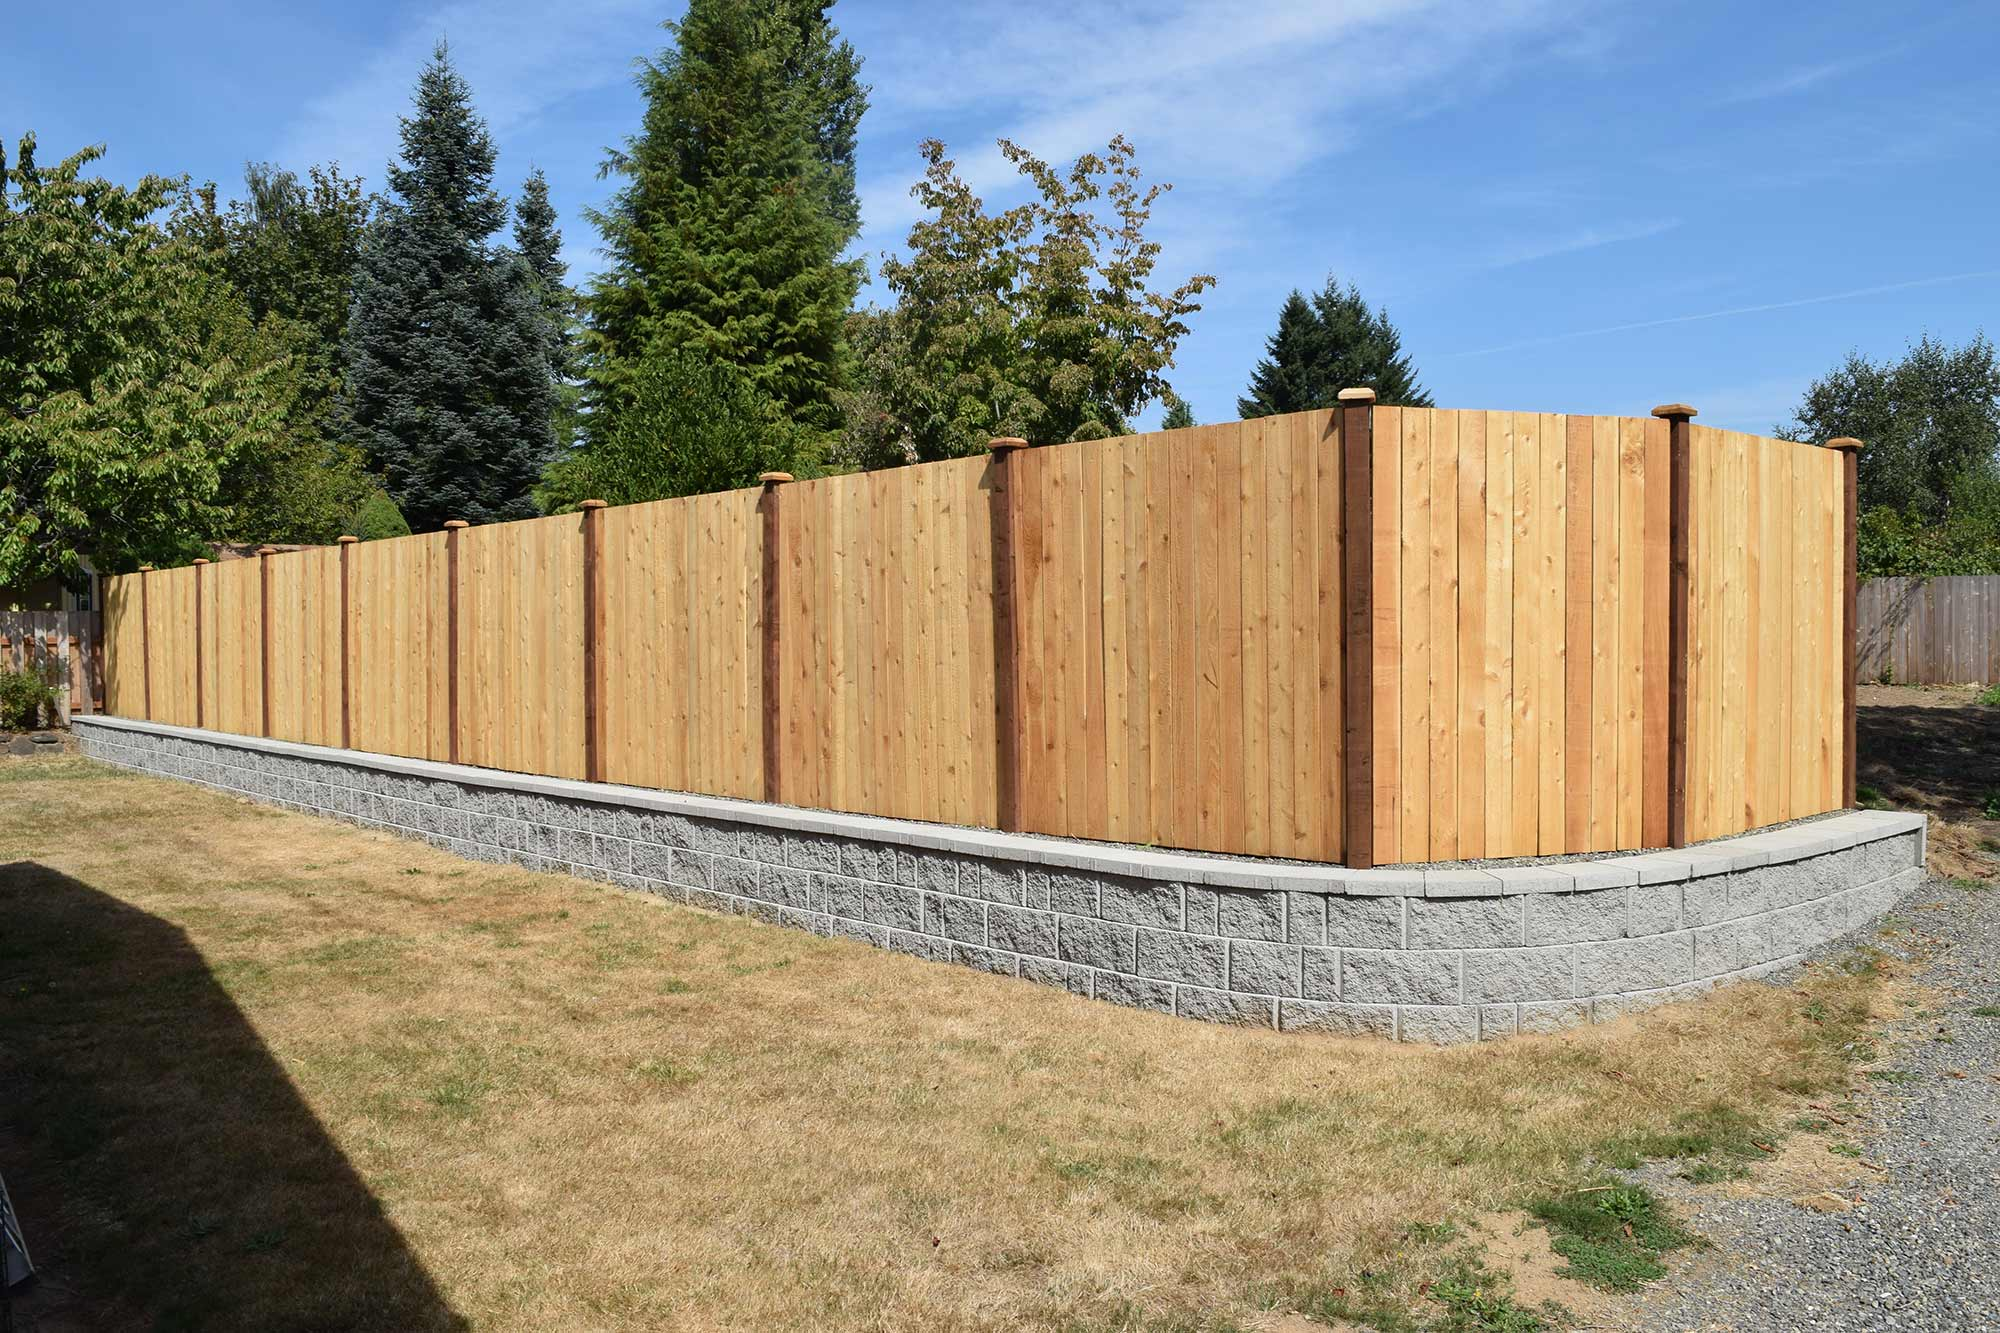 AJB Services built this retaining wall and wood fence to divide a panhandle lot from the original home and front parcel.